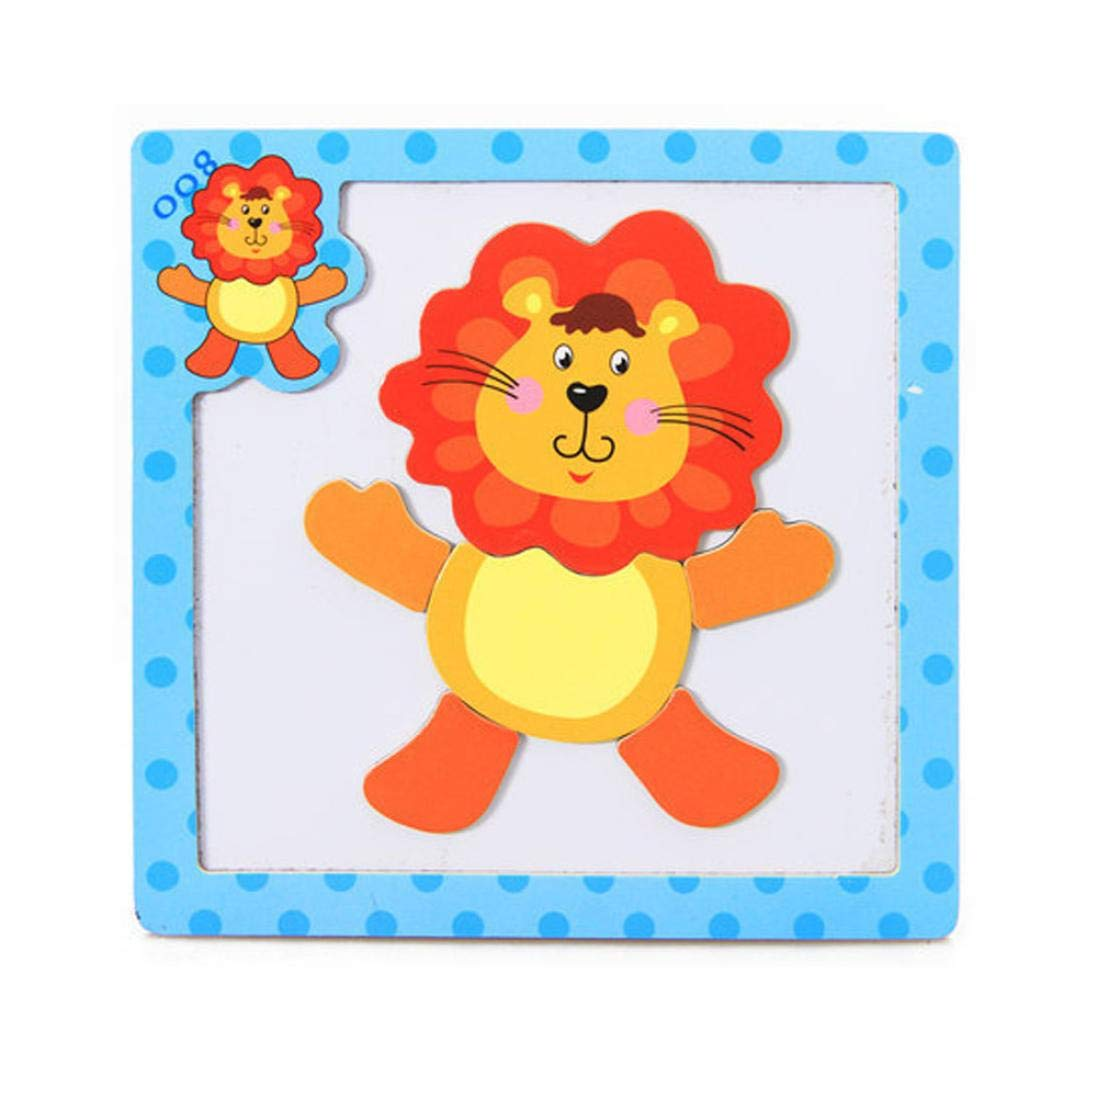 Roysberry Toys - Wooden Educational Magnetic Preschool Sun Lion 3D Puzzle Shape Color Recognition Stereoscopic Alphabet Puzzle Toys - Birthday Gift Toy Jigsaw Puzzles for Kids